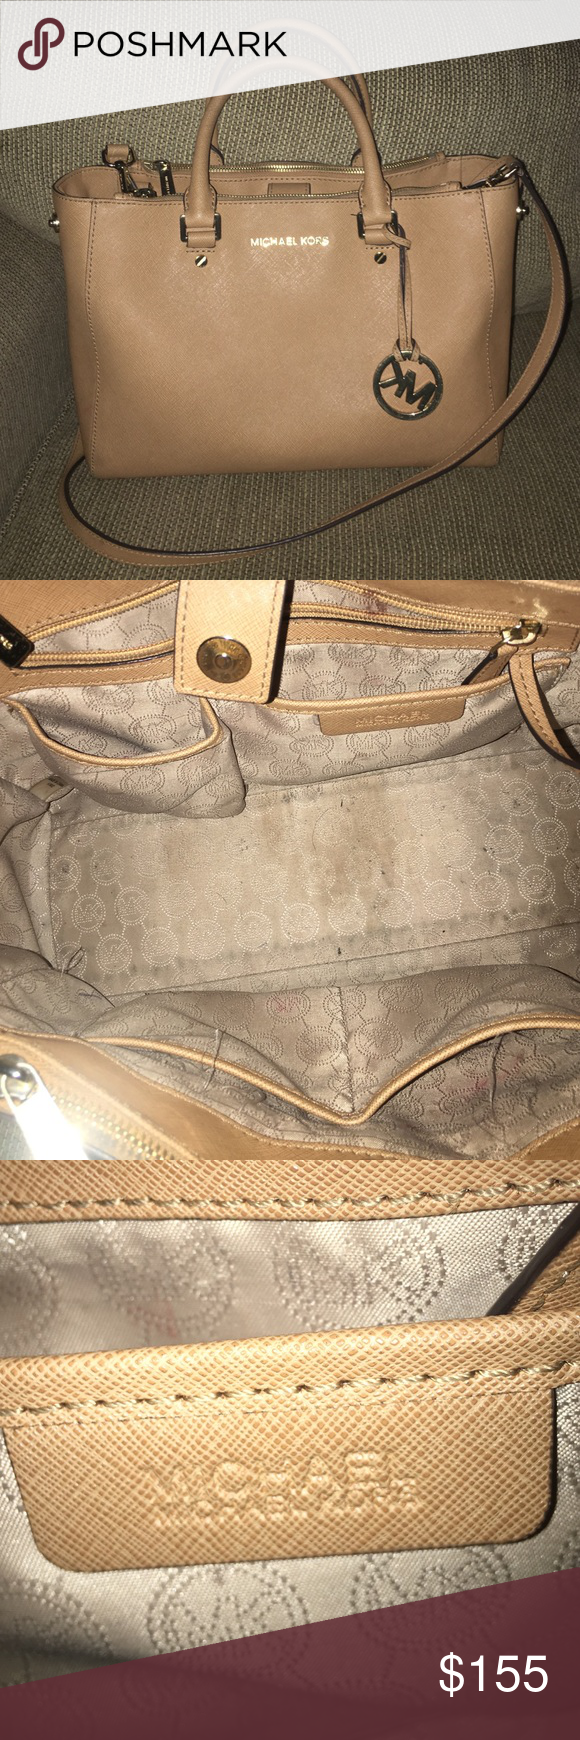 Michael Kors Purse Gently Used Authentic Tags Not Included Small Stain On The Inside Of Lining See Pictures Bags